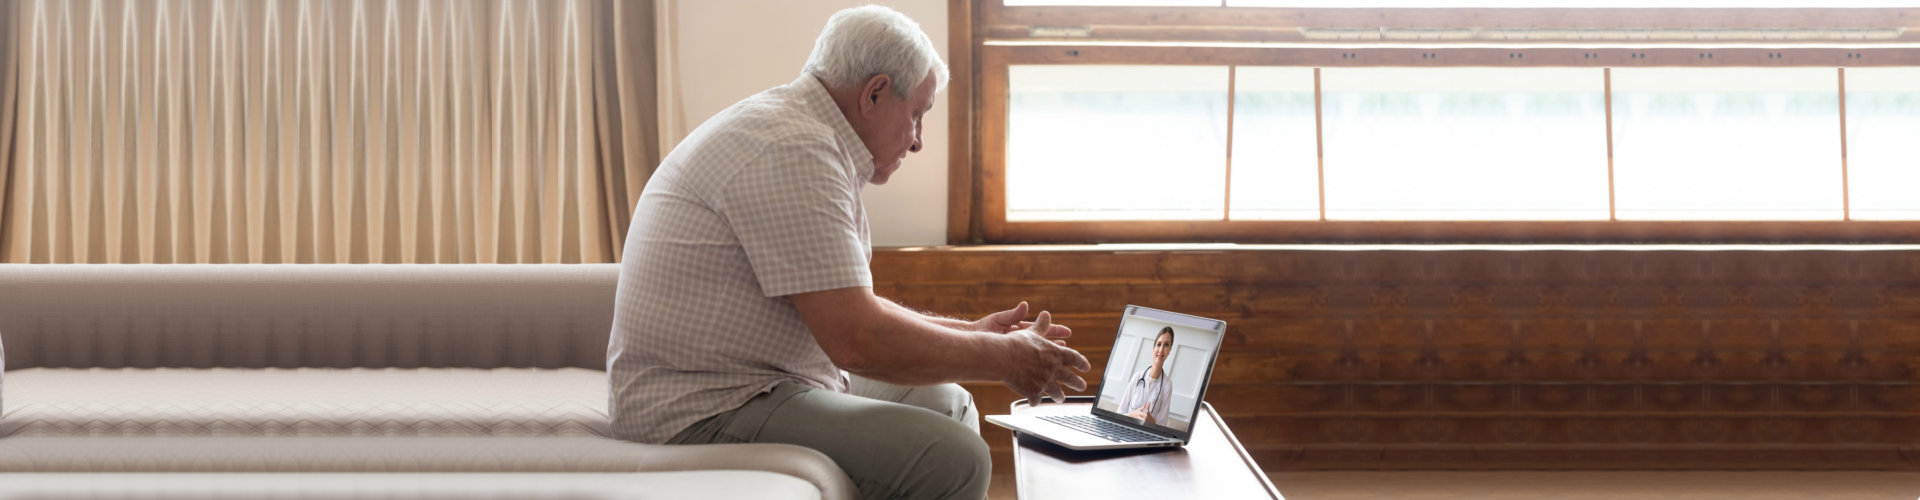 Elderly man sit on couch at home have online consultation on computer with female doctor or physician, mature grandfather patient consult do checkup with nurse talk on video call use webcam on laptop